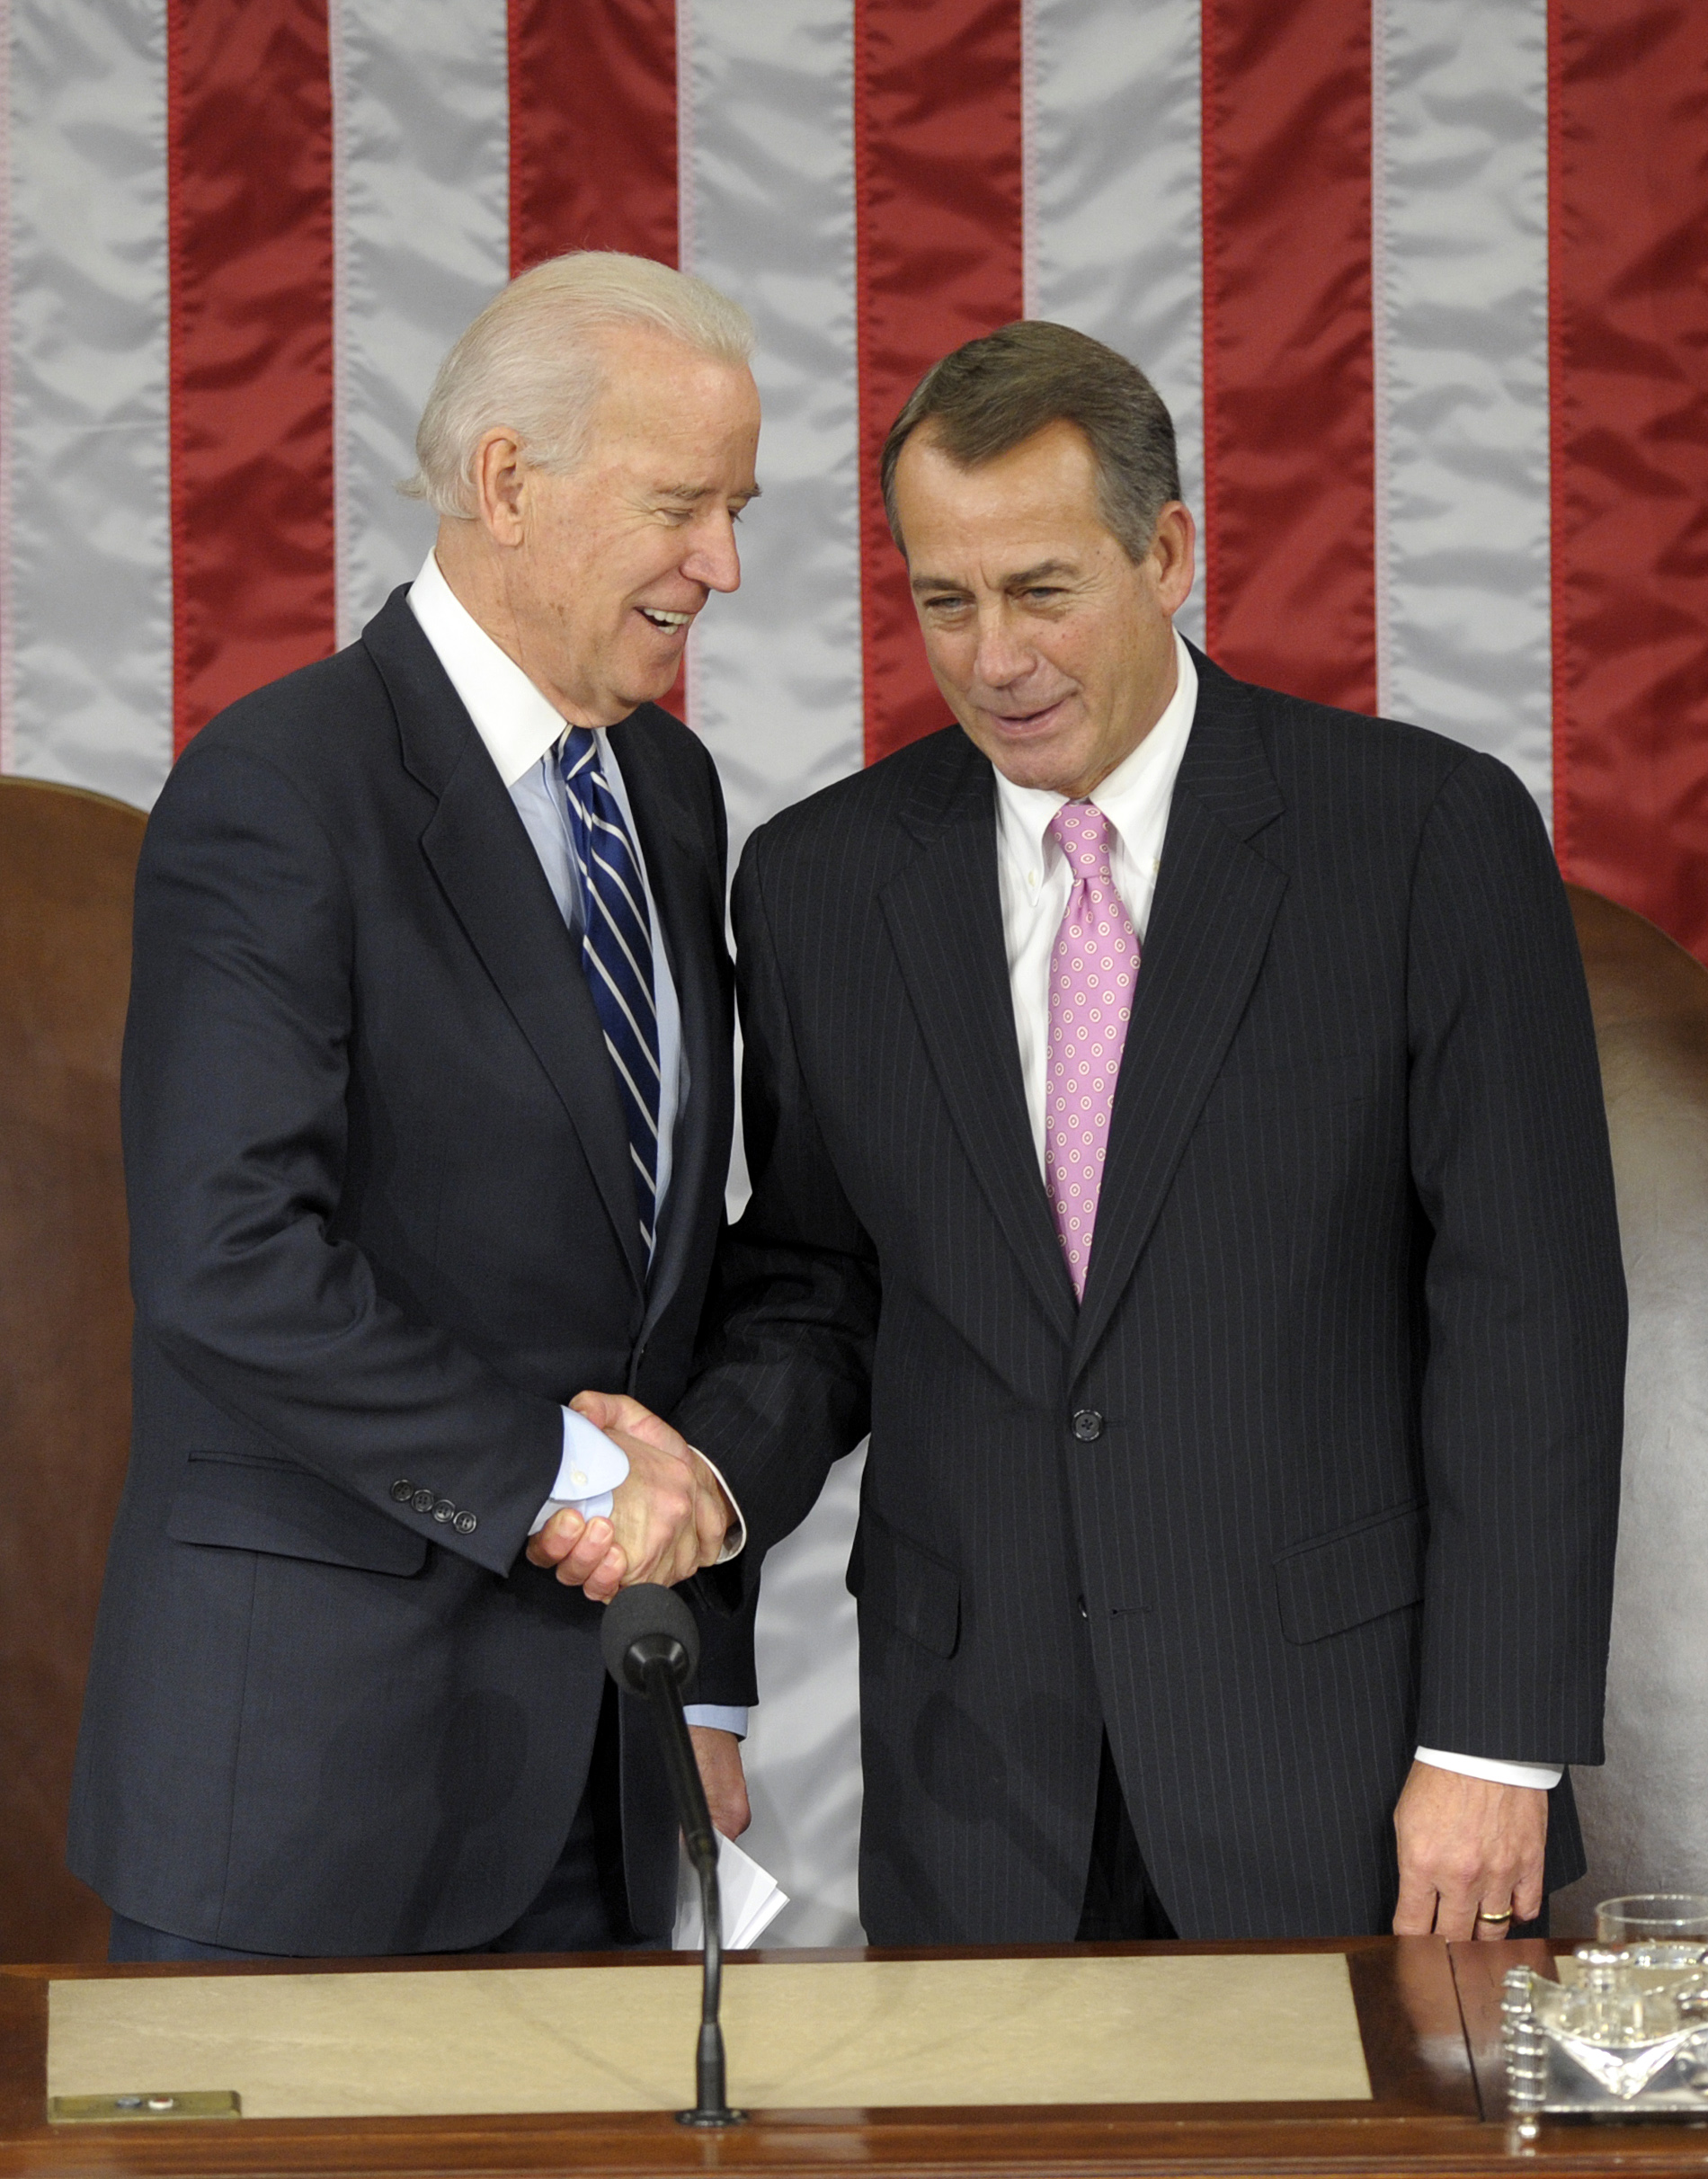 Vice President Joe Biden shakes hands with House Speaker John Boehner of Ohio in the House Chamber before the counting of Electoral College votes on Capitol Hill on Friday. (Susan Walsh/AP)